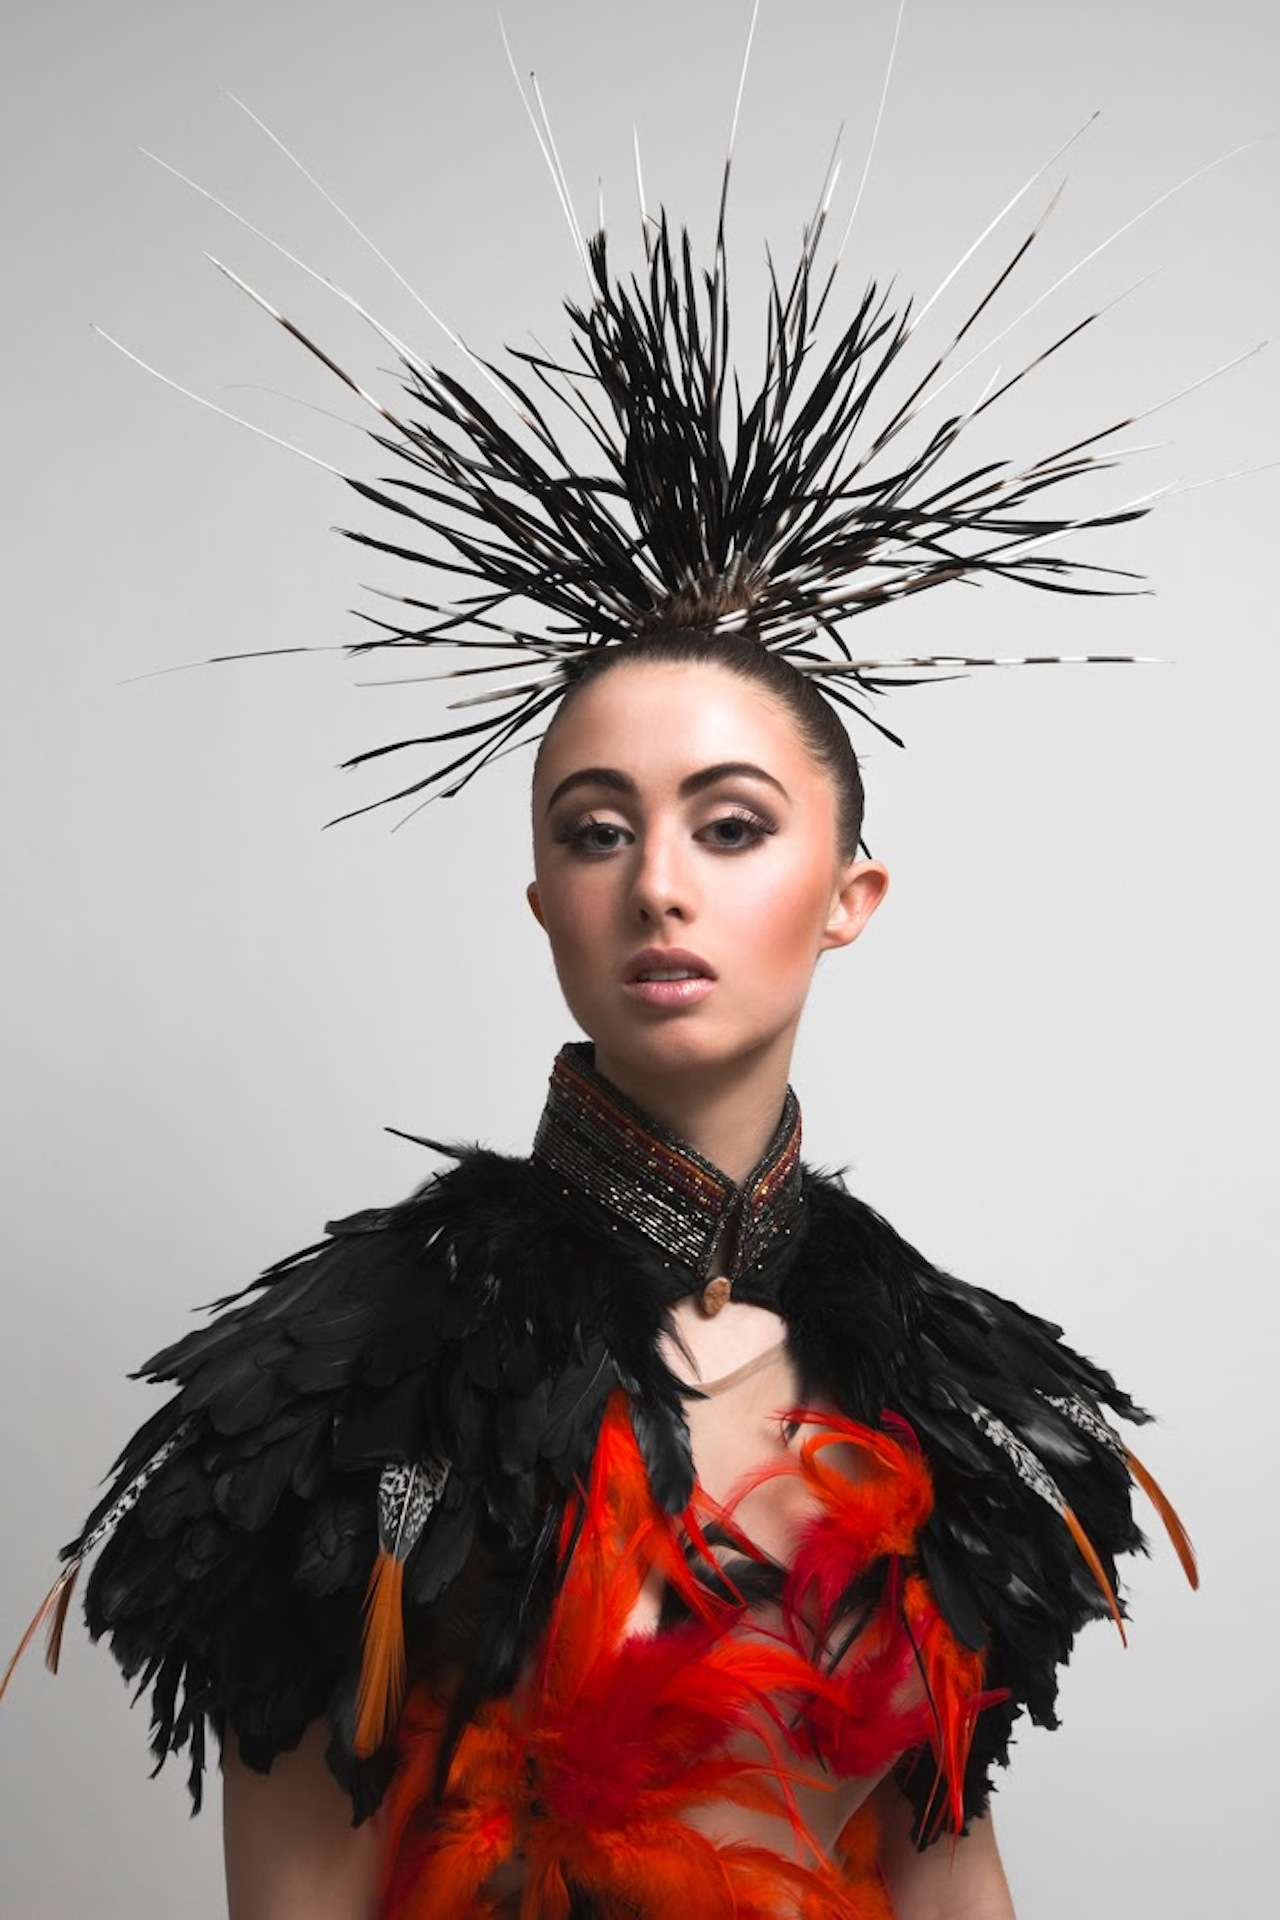 The Fiercely Contemporary Aesthetic Of Today 39 S Native American Fashion Designers